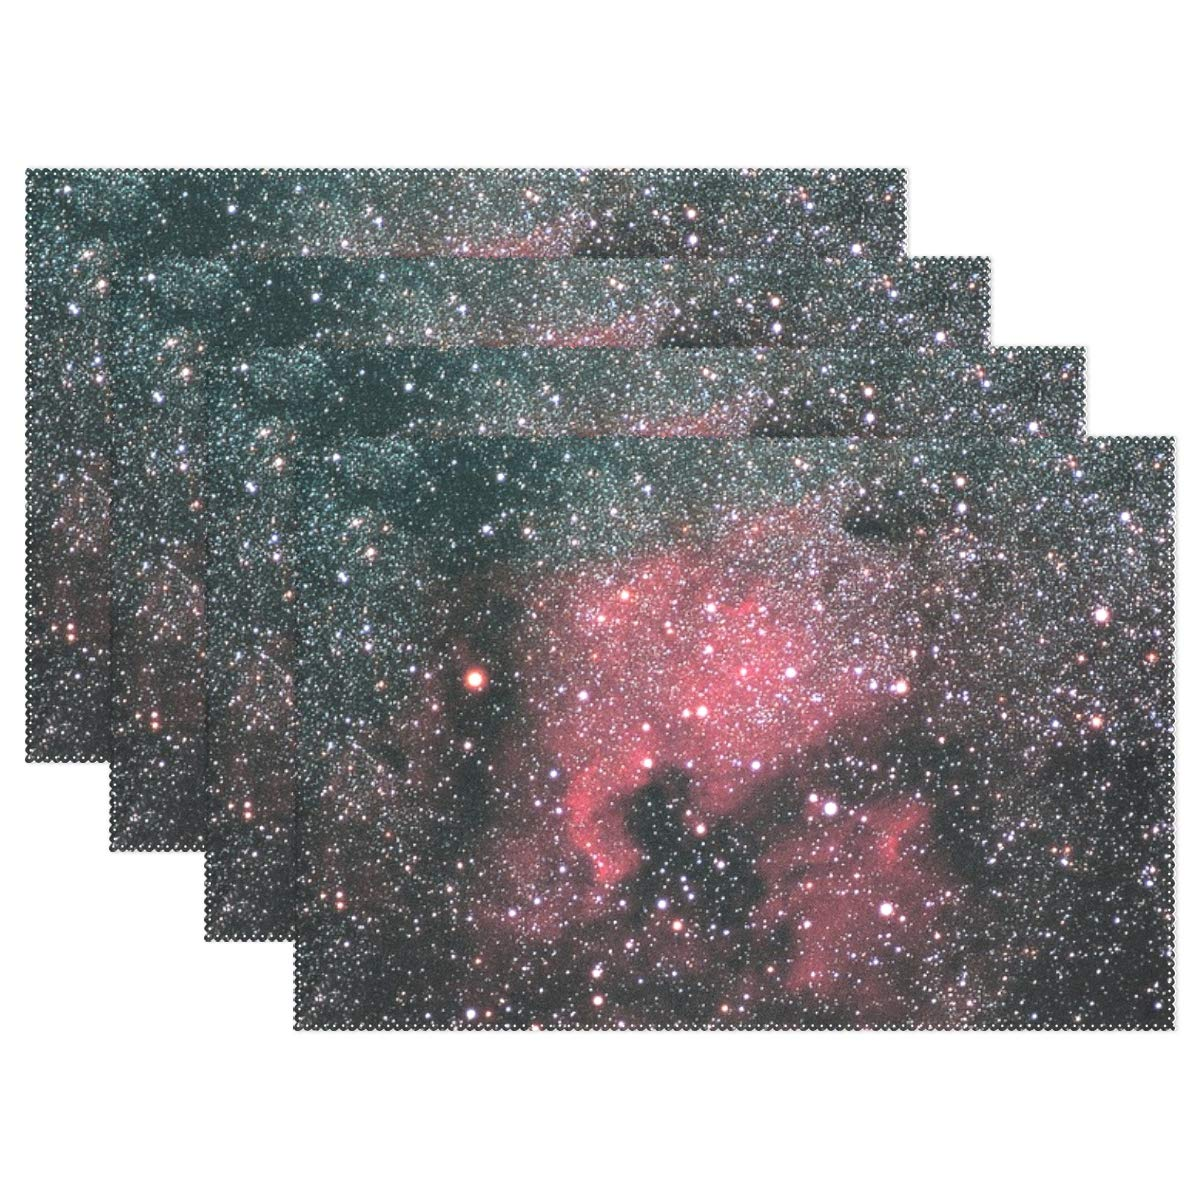 XINGCHENSS North America Nebula NGC 7000 Galaxy Space Placemats Set of 4 Heat Insulation Stain Resistant for Dining Table Durable Non-Slip Kitchen Table Place Mats